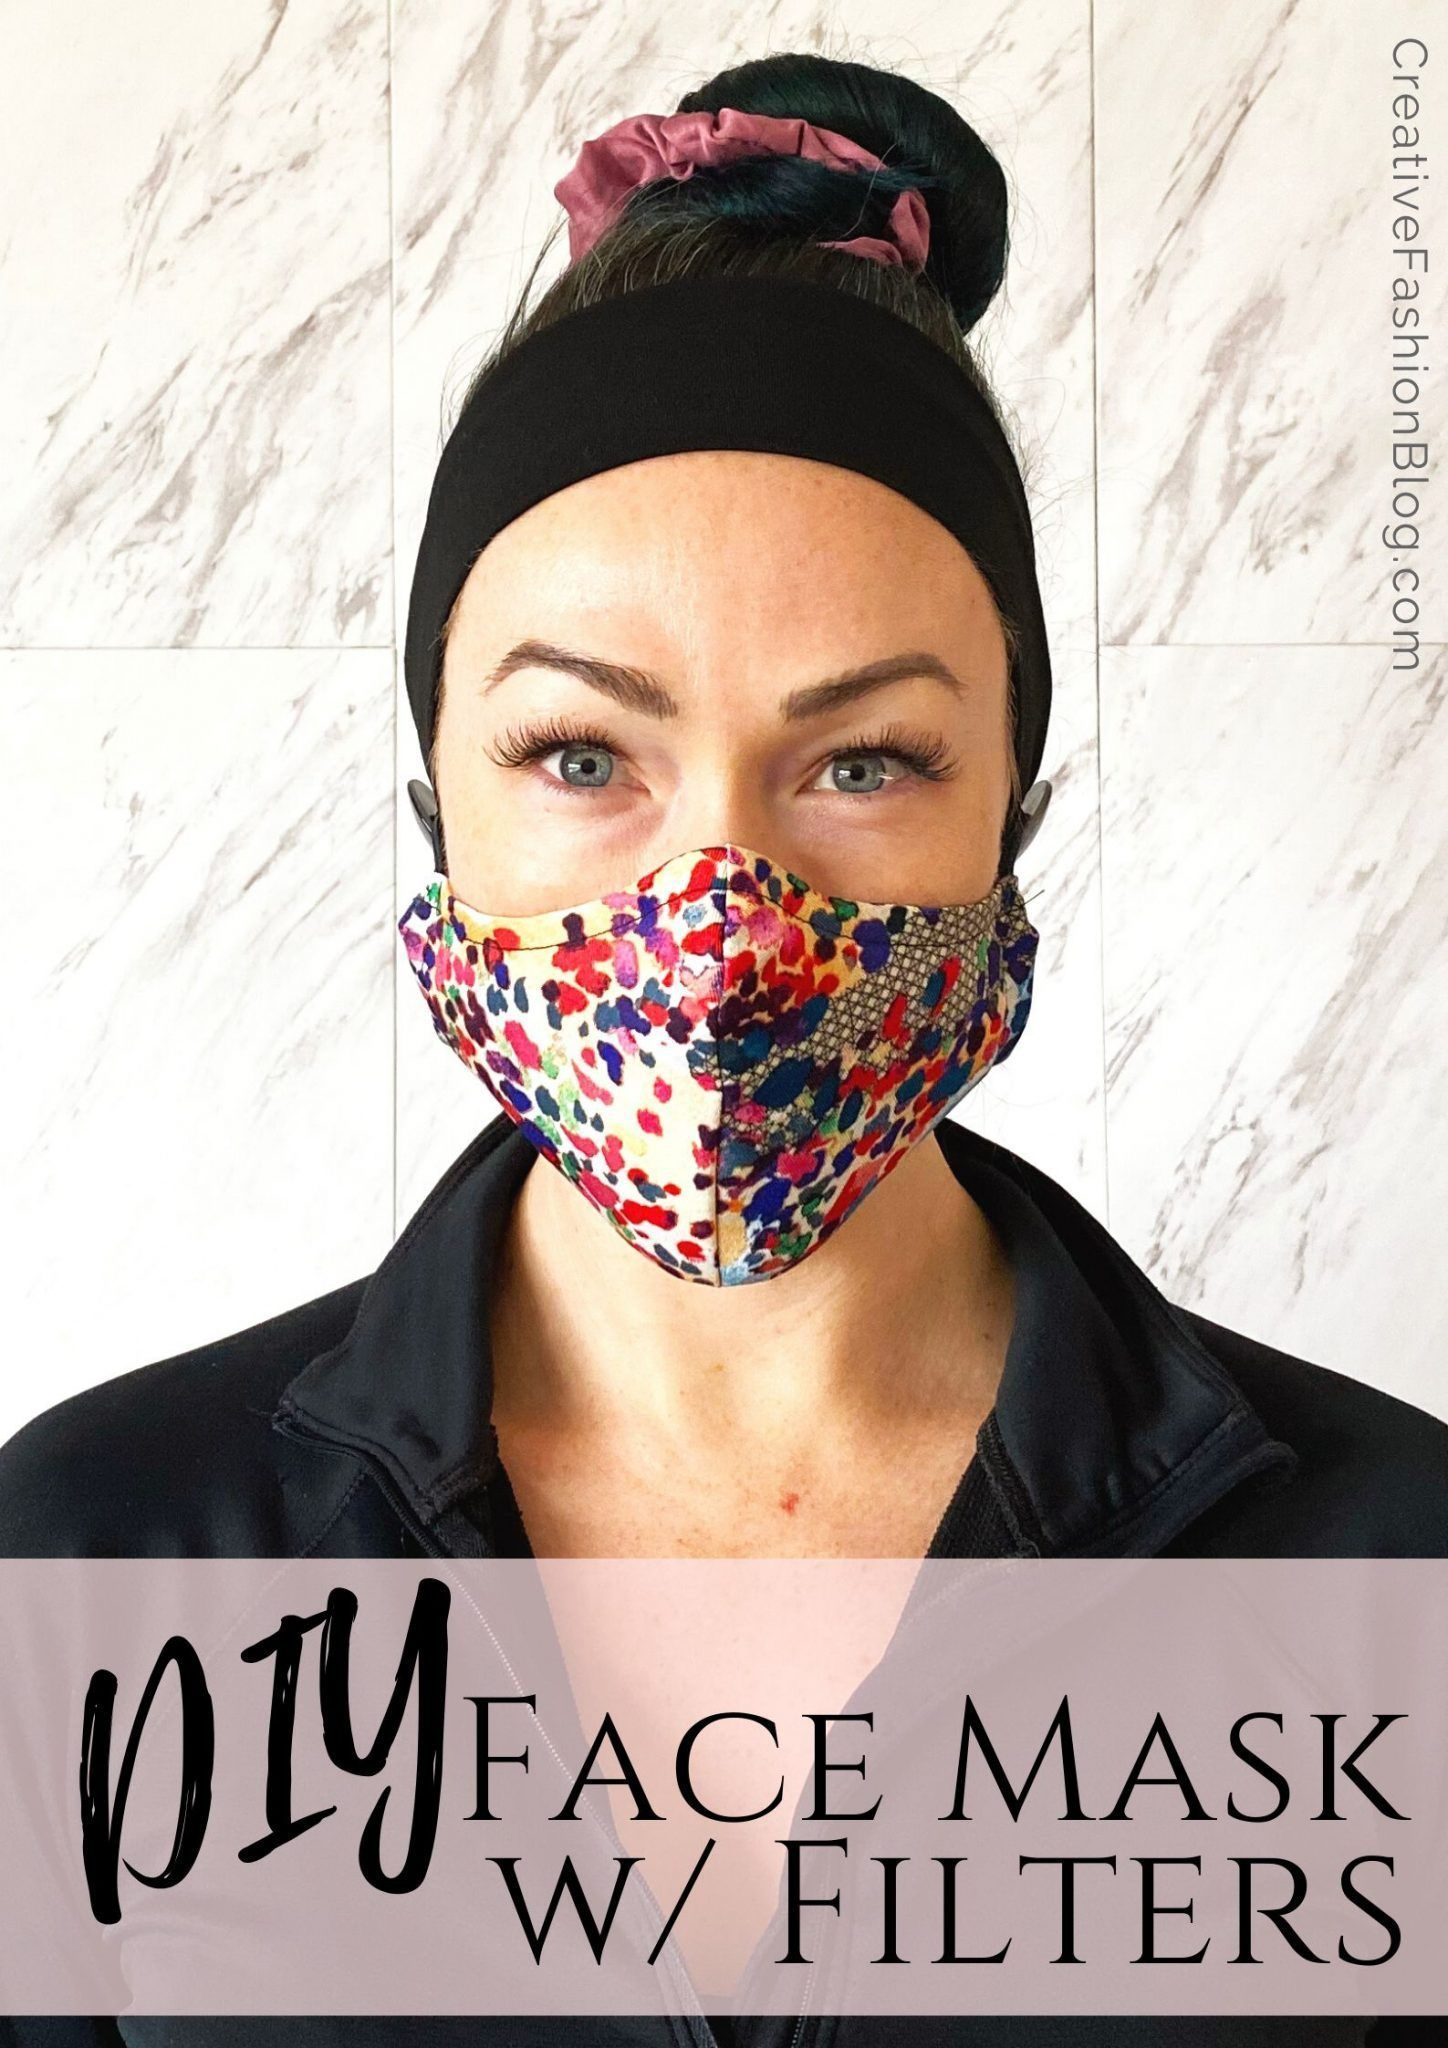 How To Make A Face Mask With HEPA Filter . A Printable